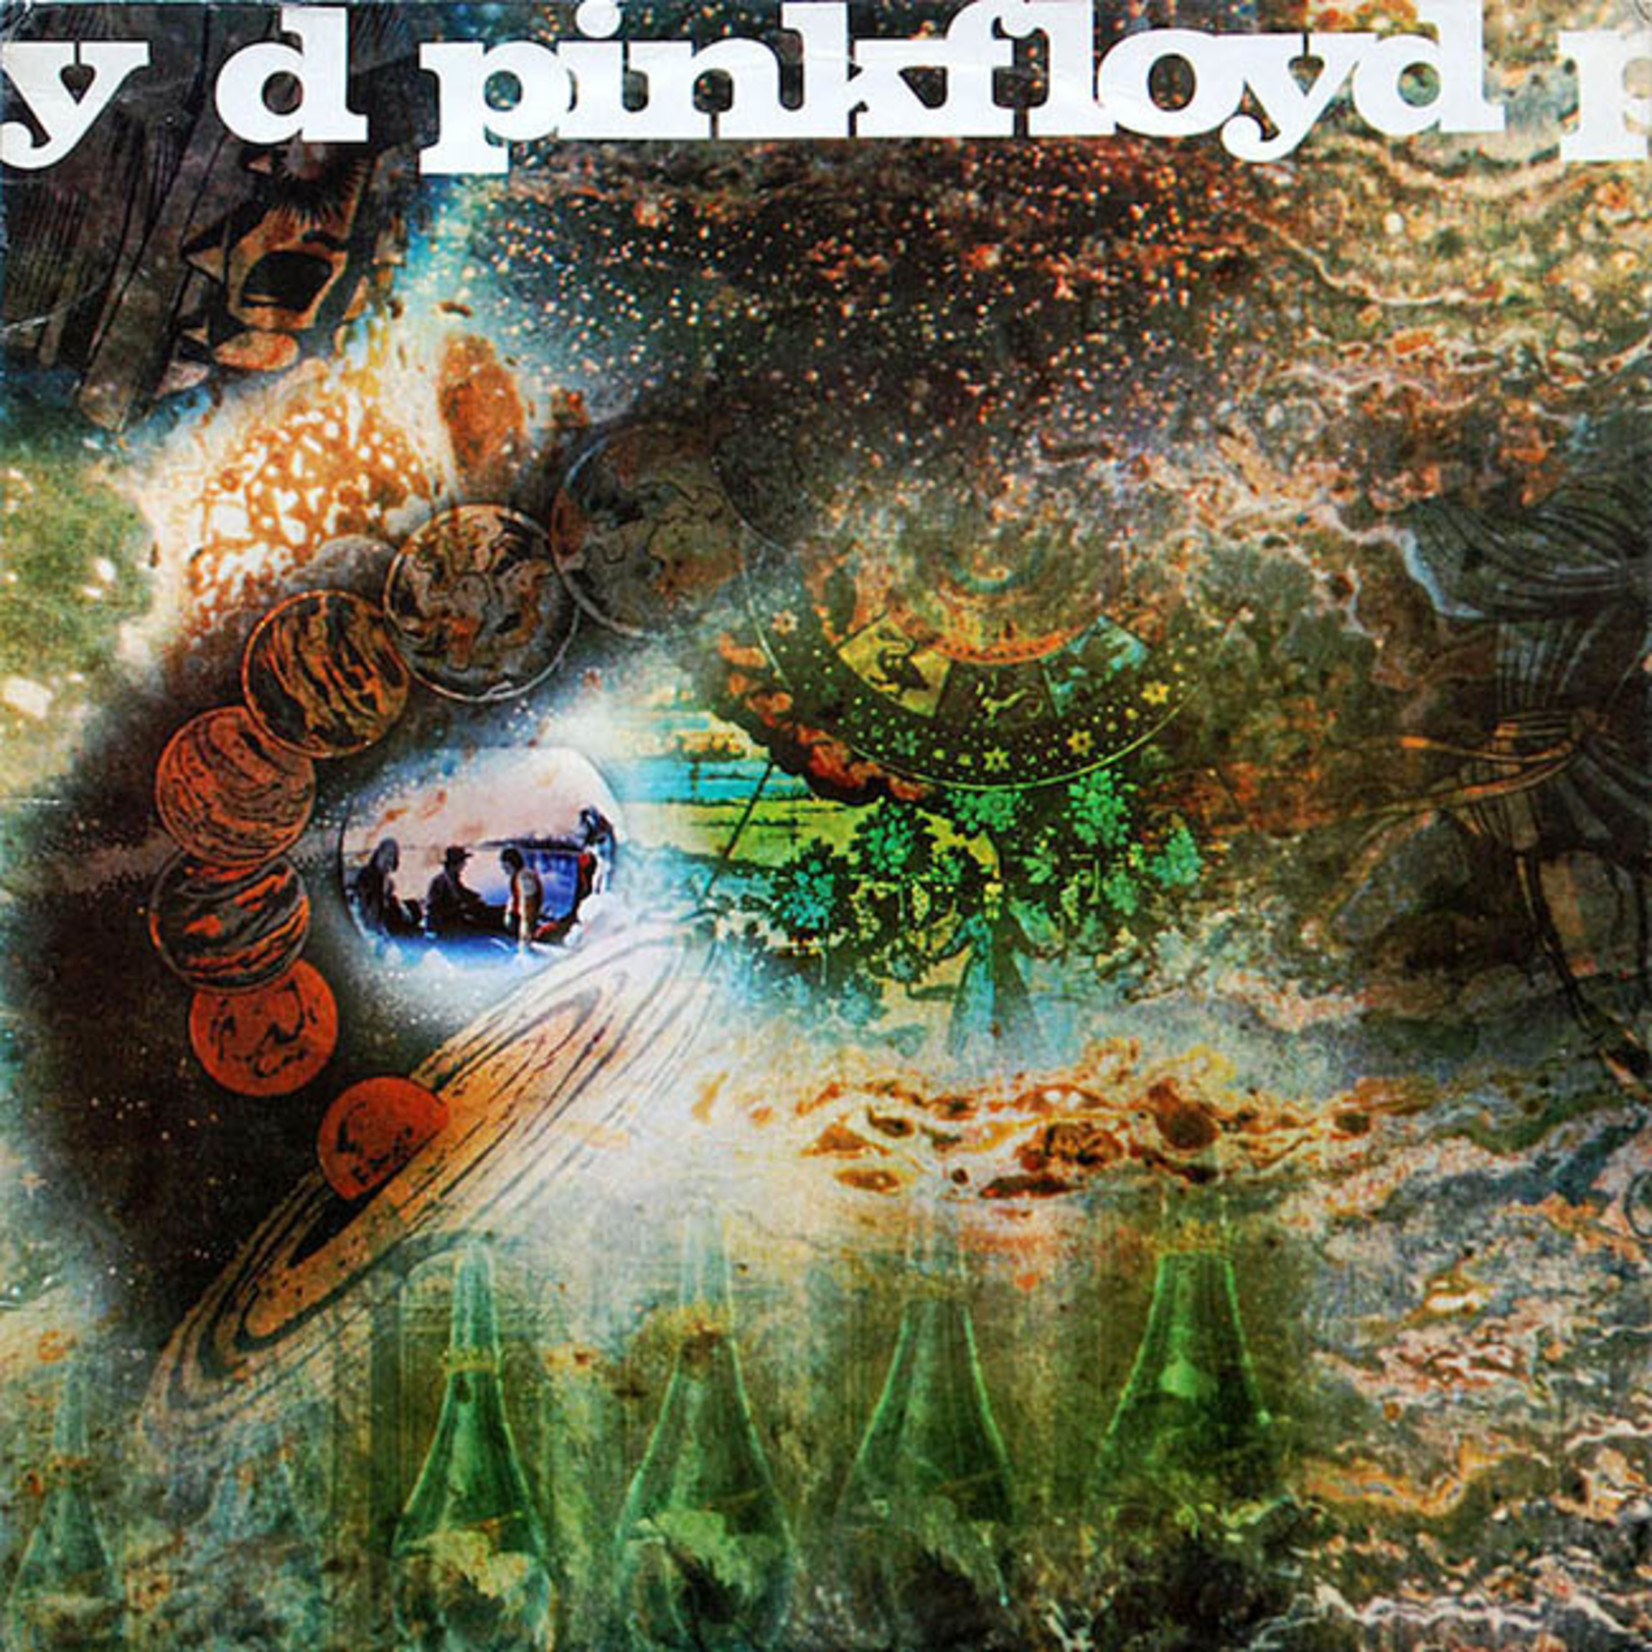 [New] Pink Floyd: A Saucerful Of Secrets (2016 remaster)